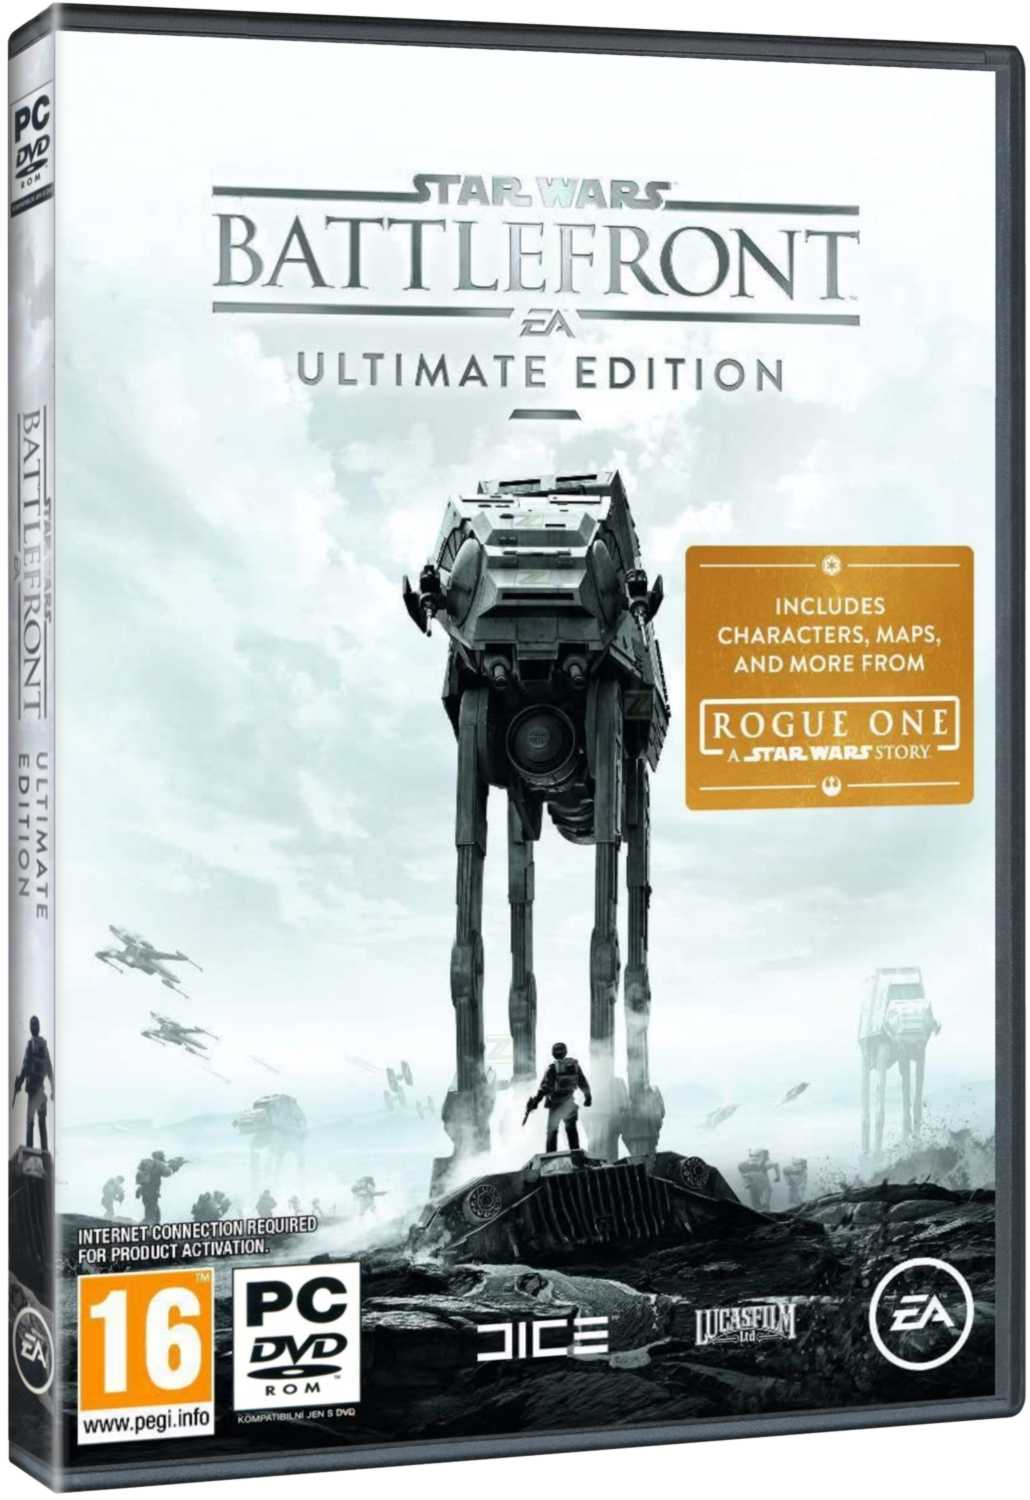 STAR WARS BATTLEFRONT (ULTIMATE EDITION) - PC